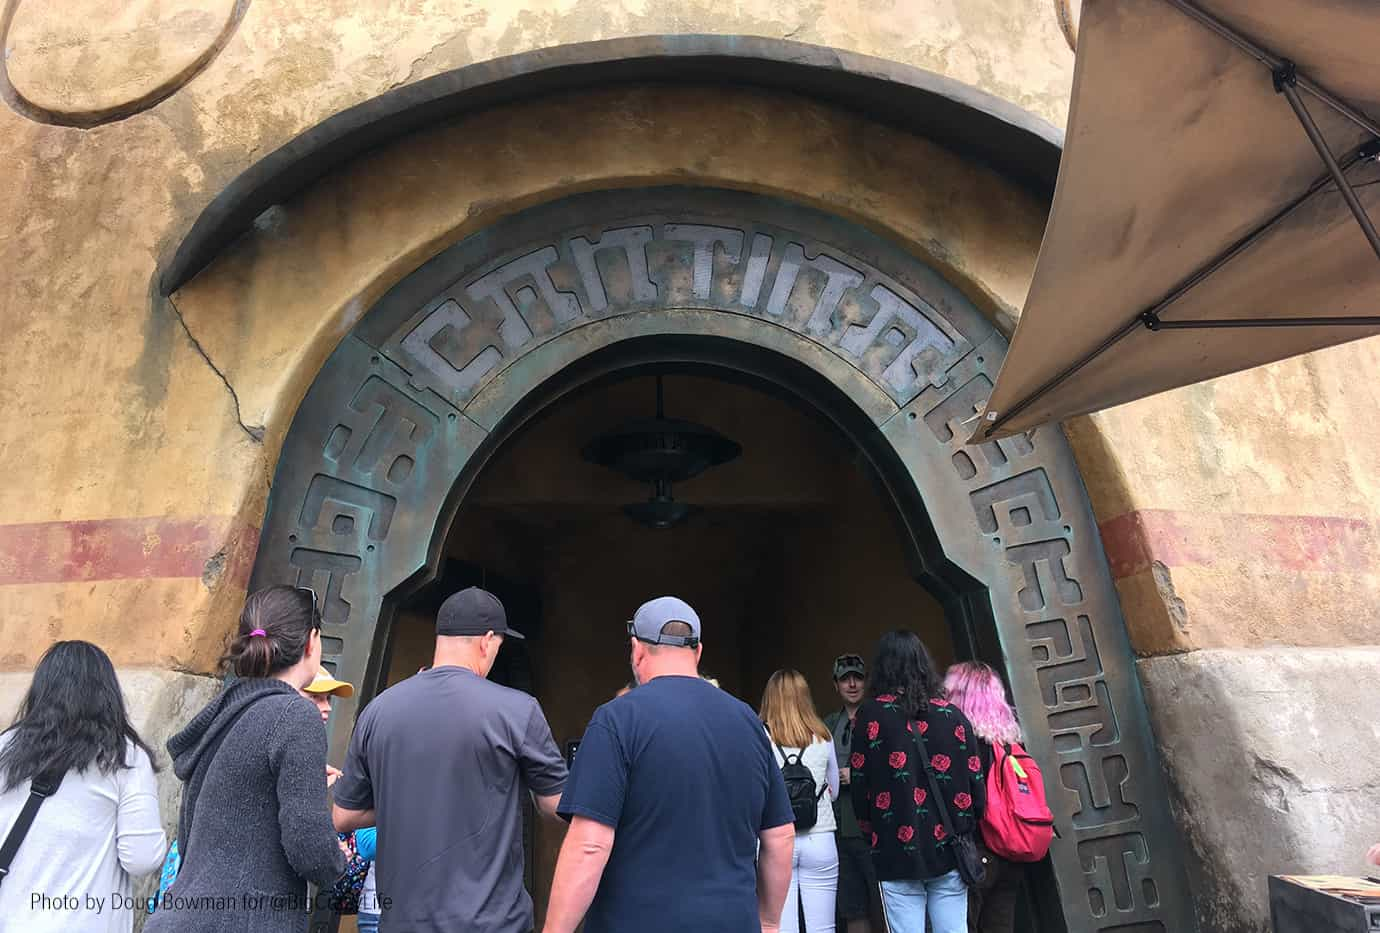 Entrance to Oga's Cantina